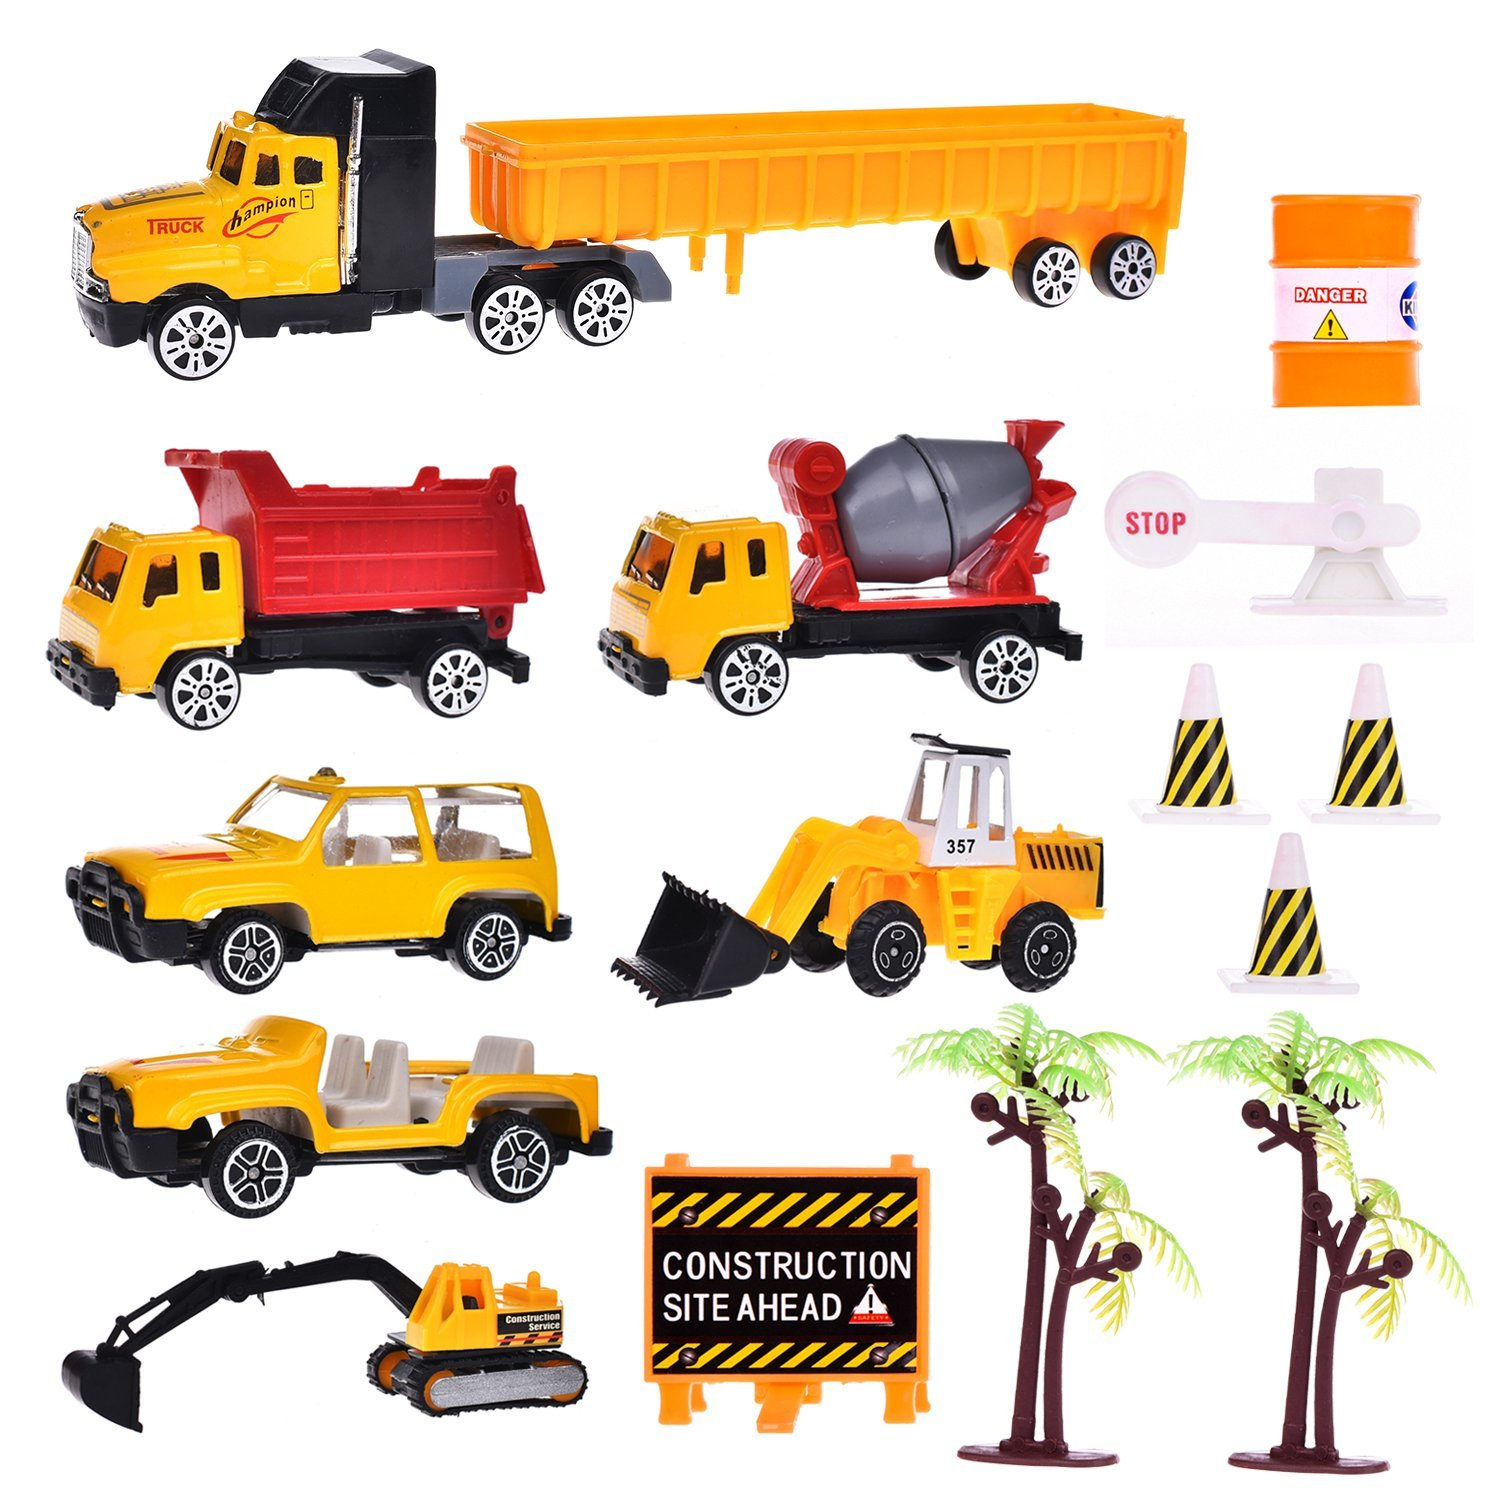 Construction Cars Play Set Vehicles Trucks Playsets for Boys Tough Construction Toy Set for Kids with Diggers, Mixing... by LIVEDITOR LIGHTING